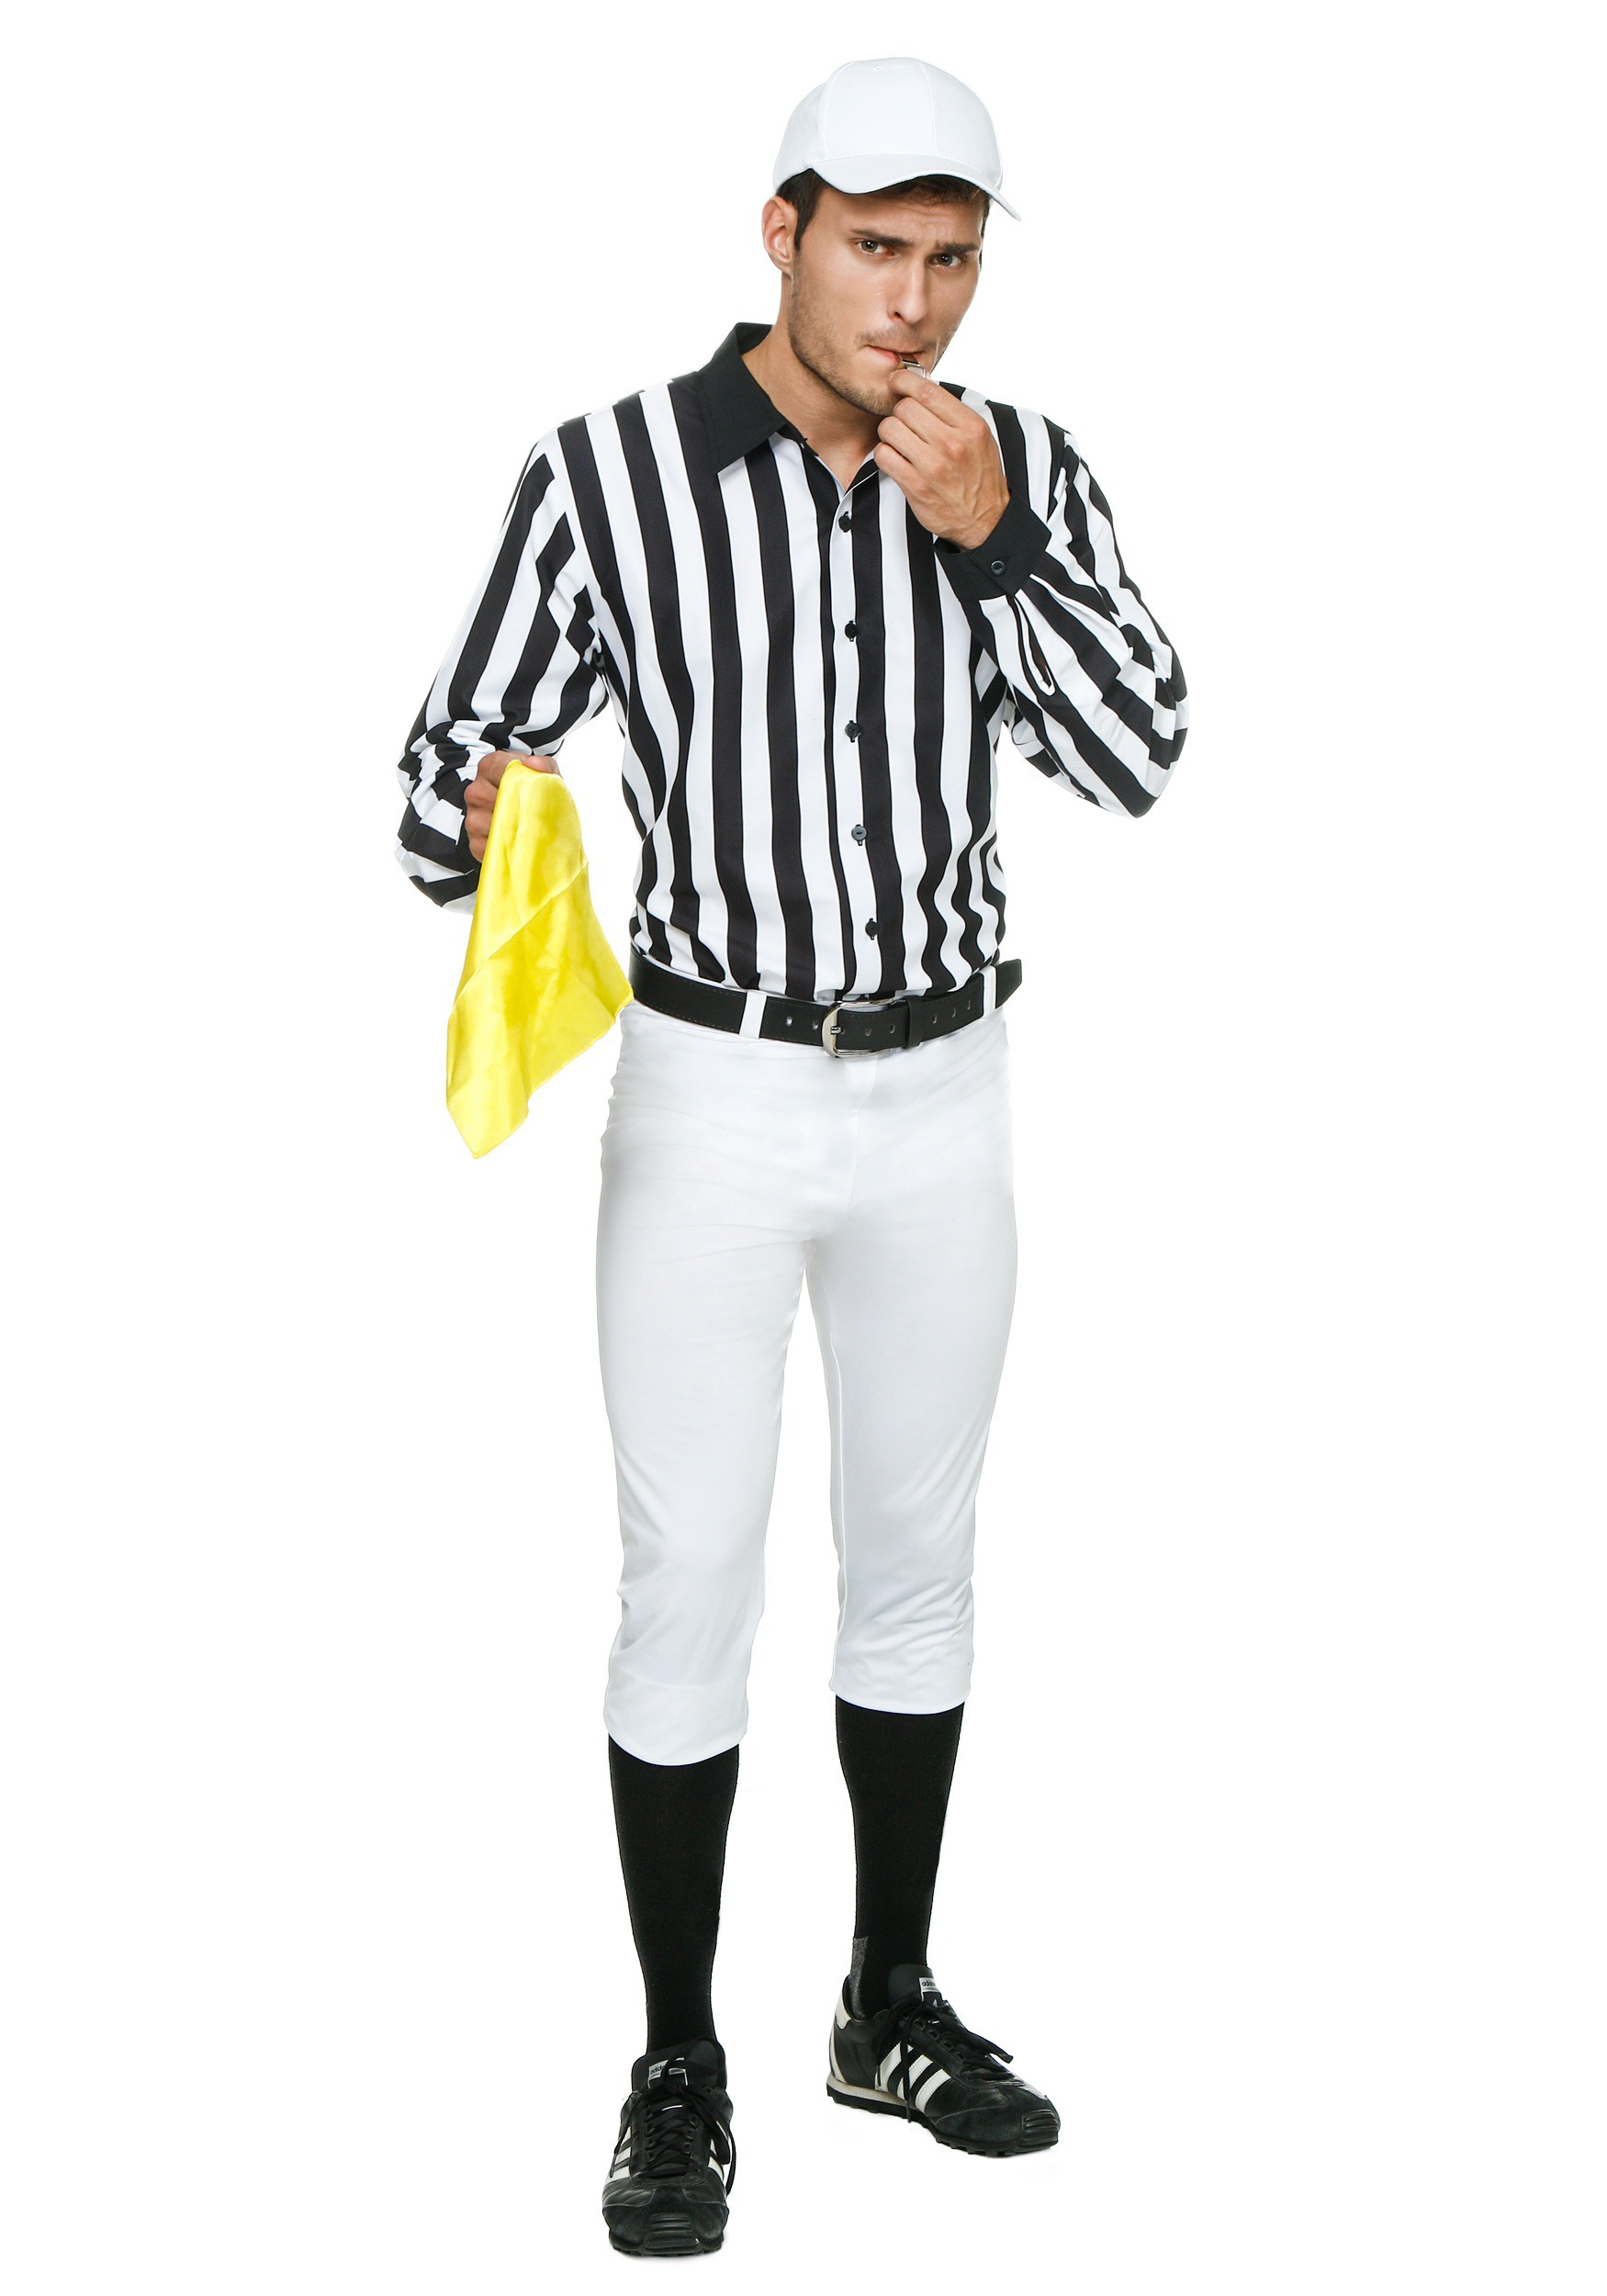 Adult Referee Costume  sc 1 st  Halloween Costumes & Referee Costumes u0026 Sexy Referee Outfits - HalloweenCostumes.com